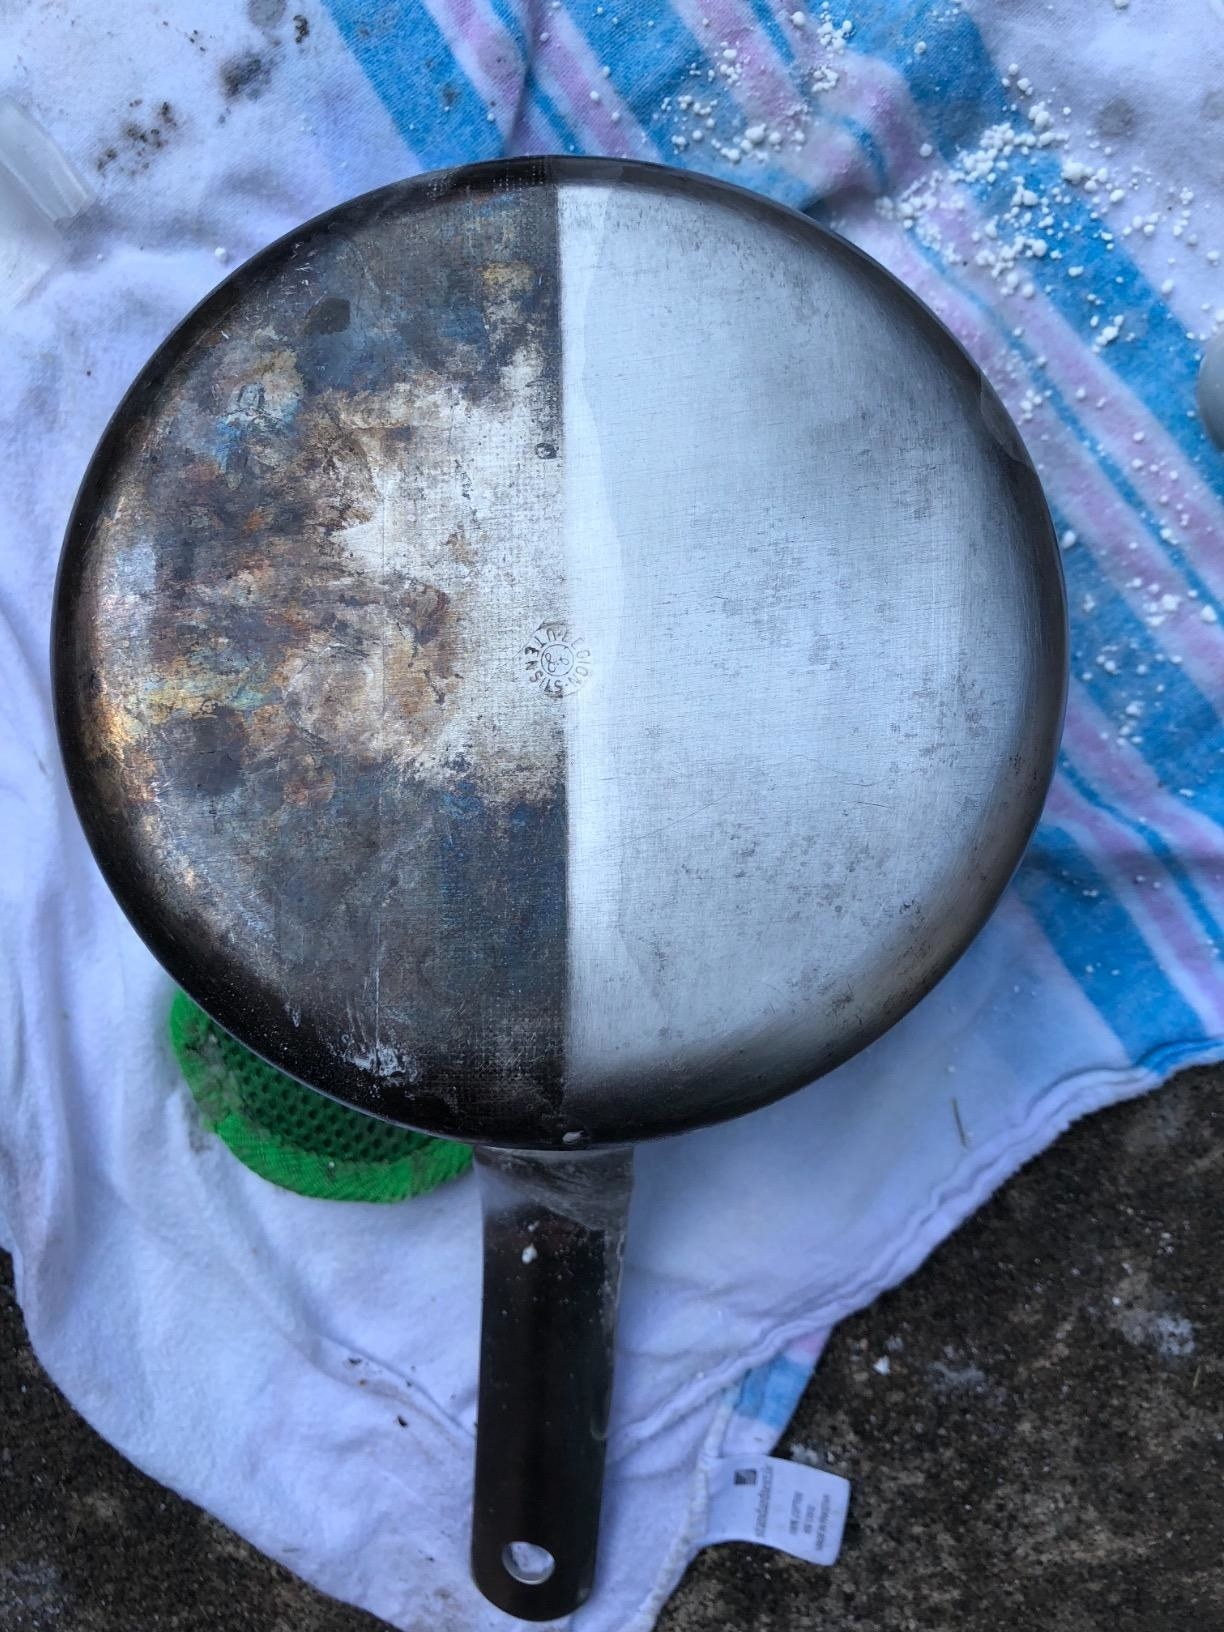 A reviewer's stainless steel pan tarnished on one side and clean on the other after being treated with the formula